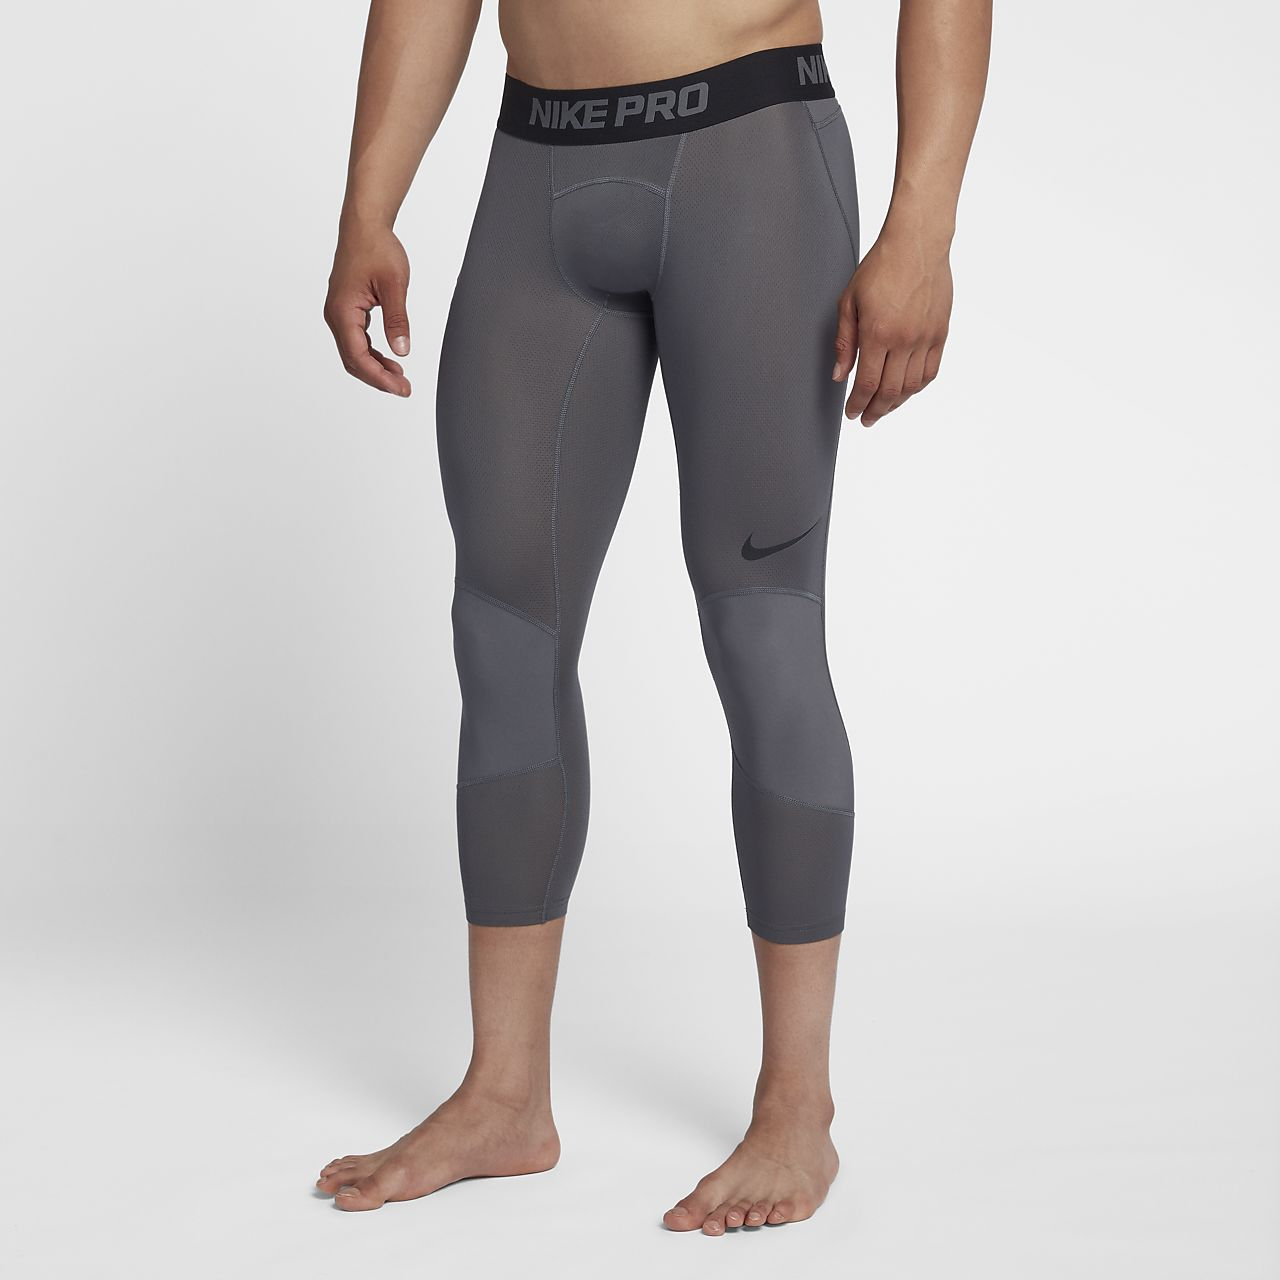 Nike Pro Dri-FIT Men's 3/4 Basketball Tights